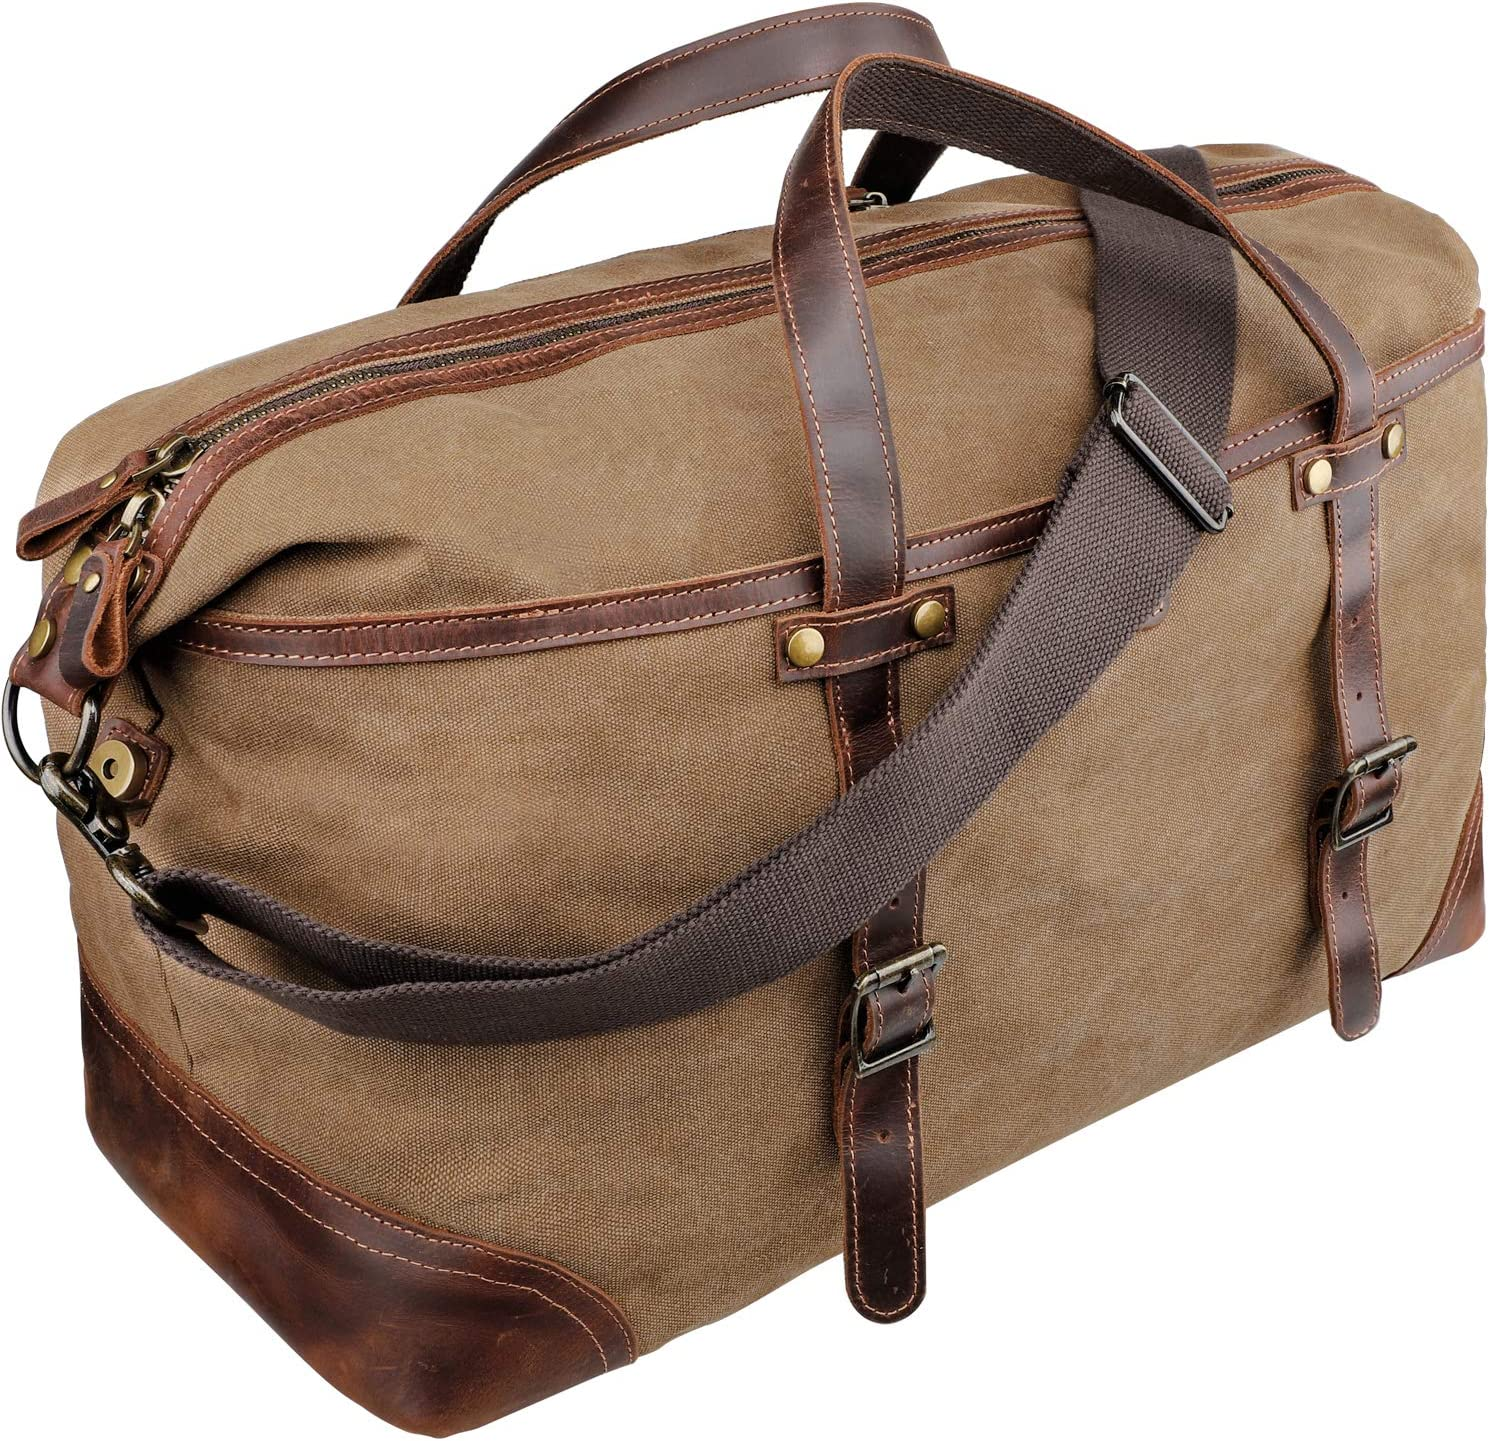 emissary Duffel Bag for Men Mens Carry On Duffel Bag Canvas and Leather Overnight Bag Large Canvas Duffel Bag Men Brown Weekender Bag